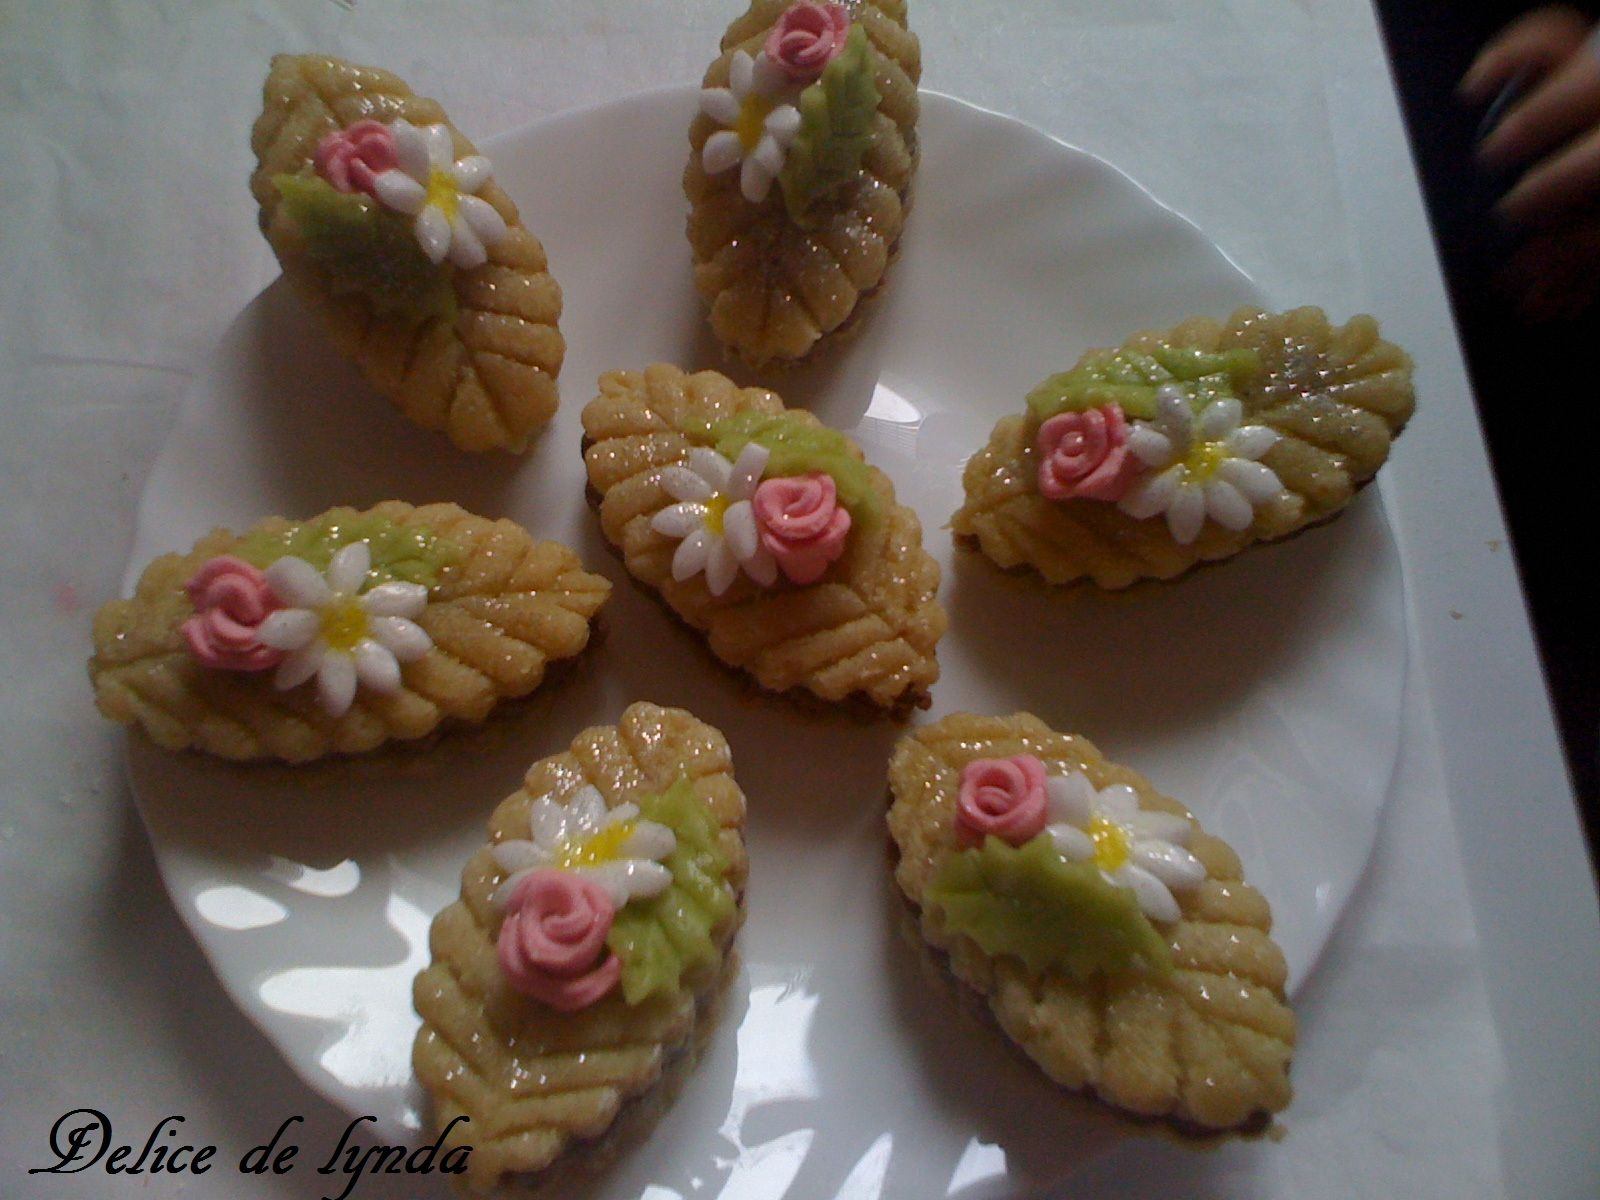 Kefta aux roses gateau algerien sans cuisson - Decoration gateau traditionnel algerien ...